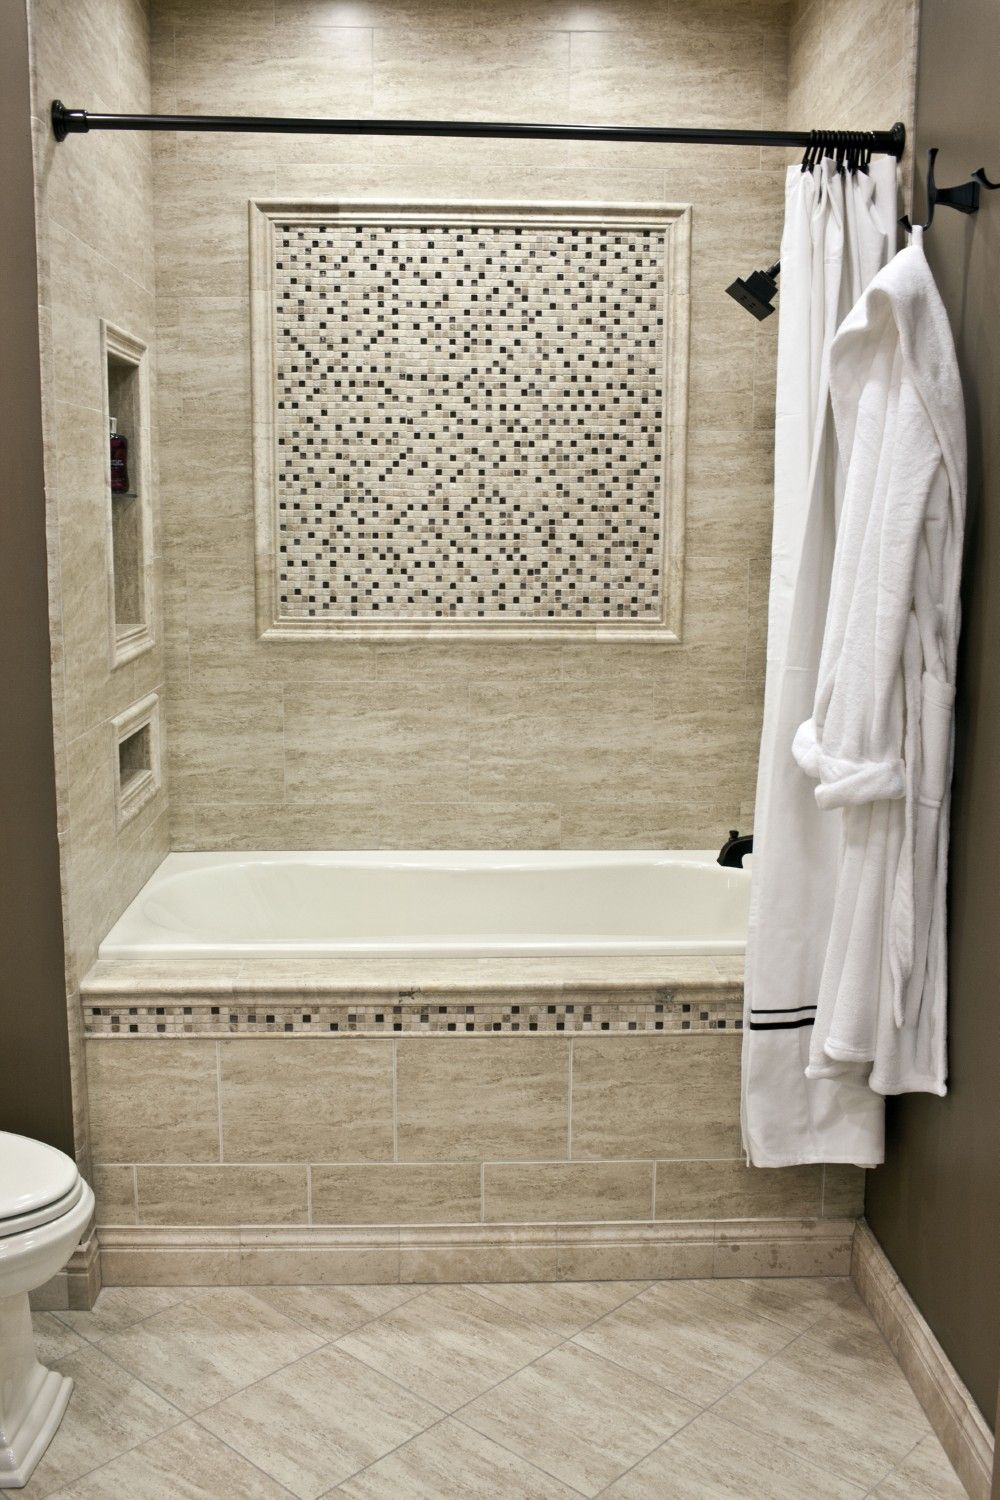 Bathroom Remodel With Tub our inexpensive tub trick | bath tubs, tubs and lancing f.c.